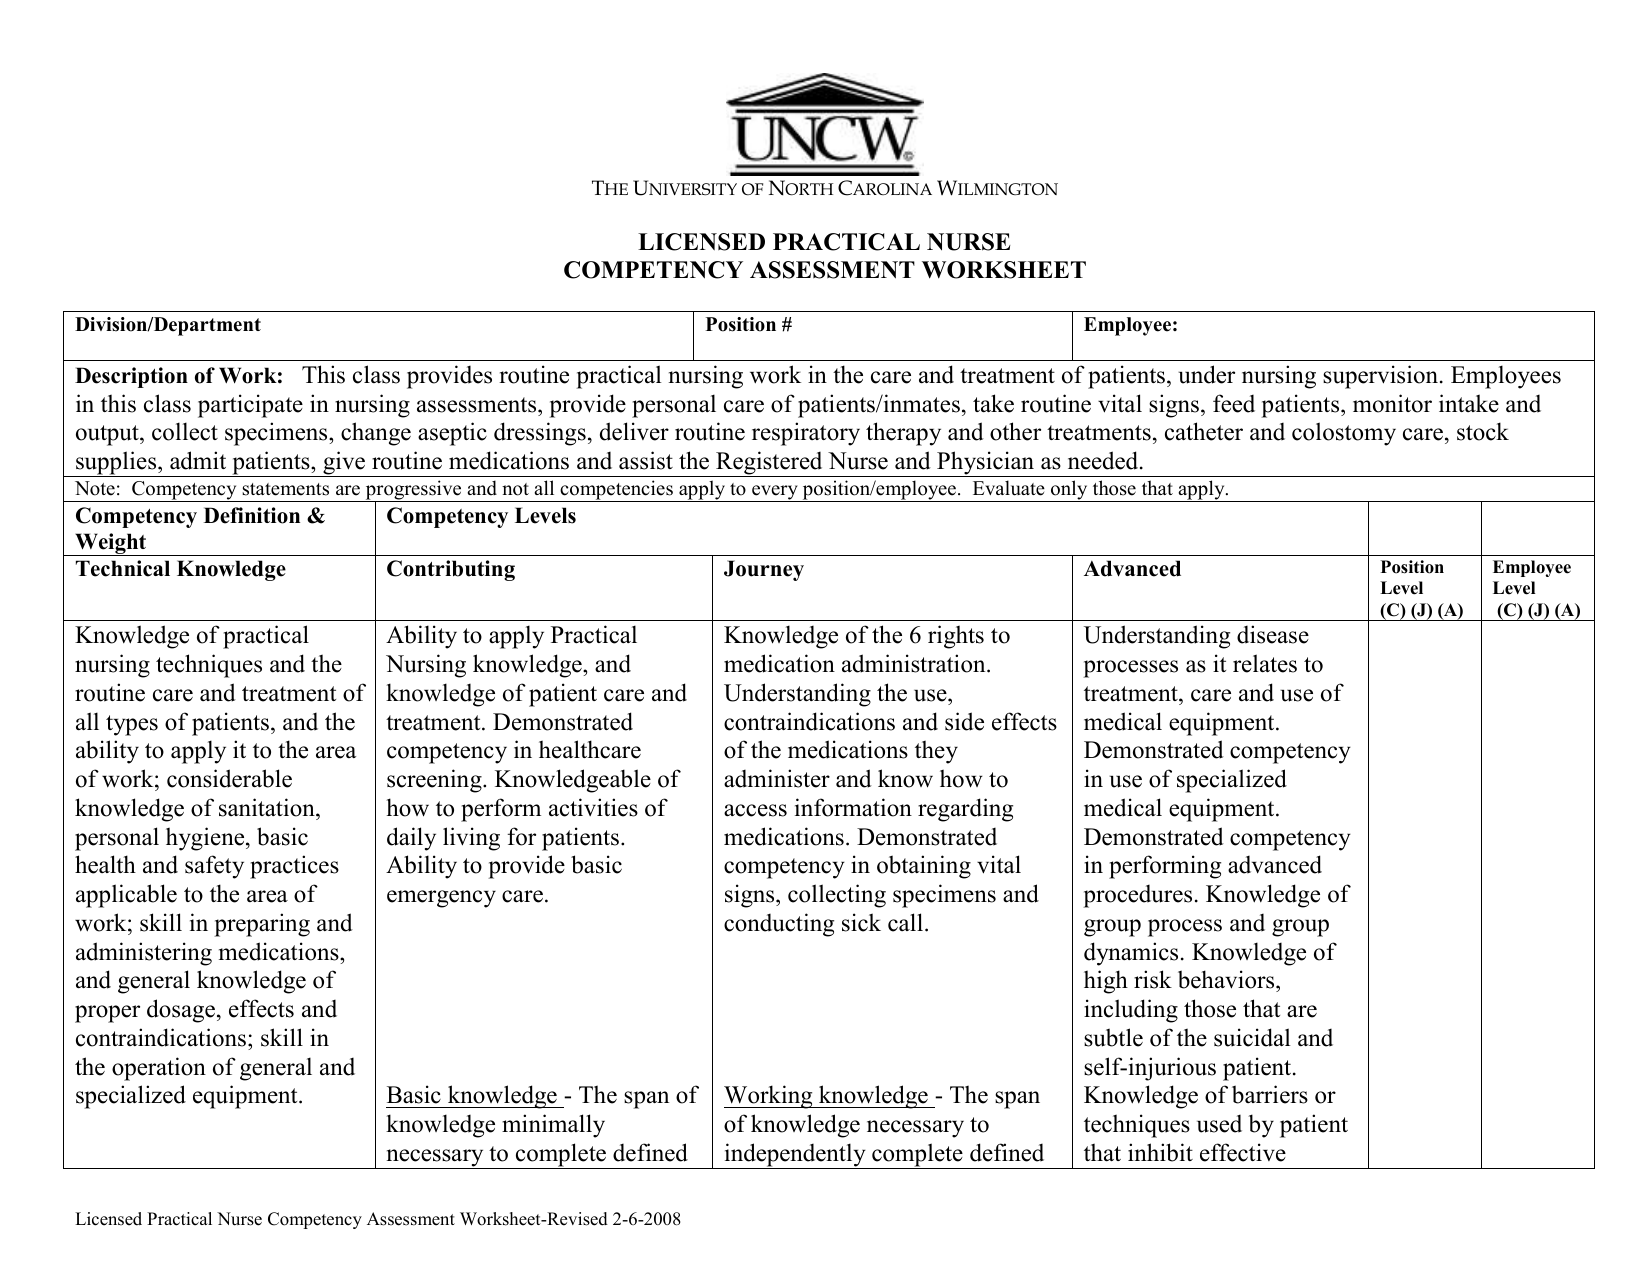 Licensed Practical Nurse Competency Assessment Worksheet